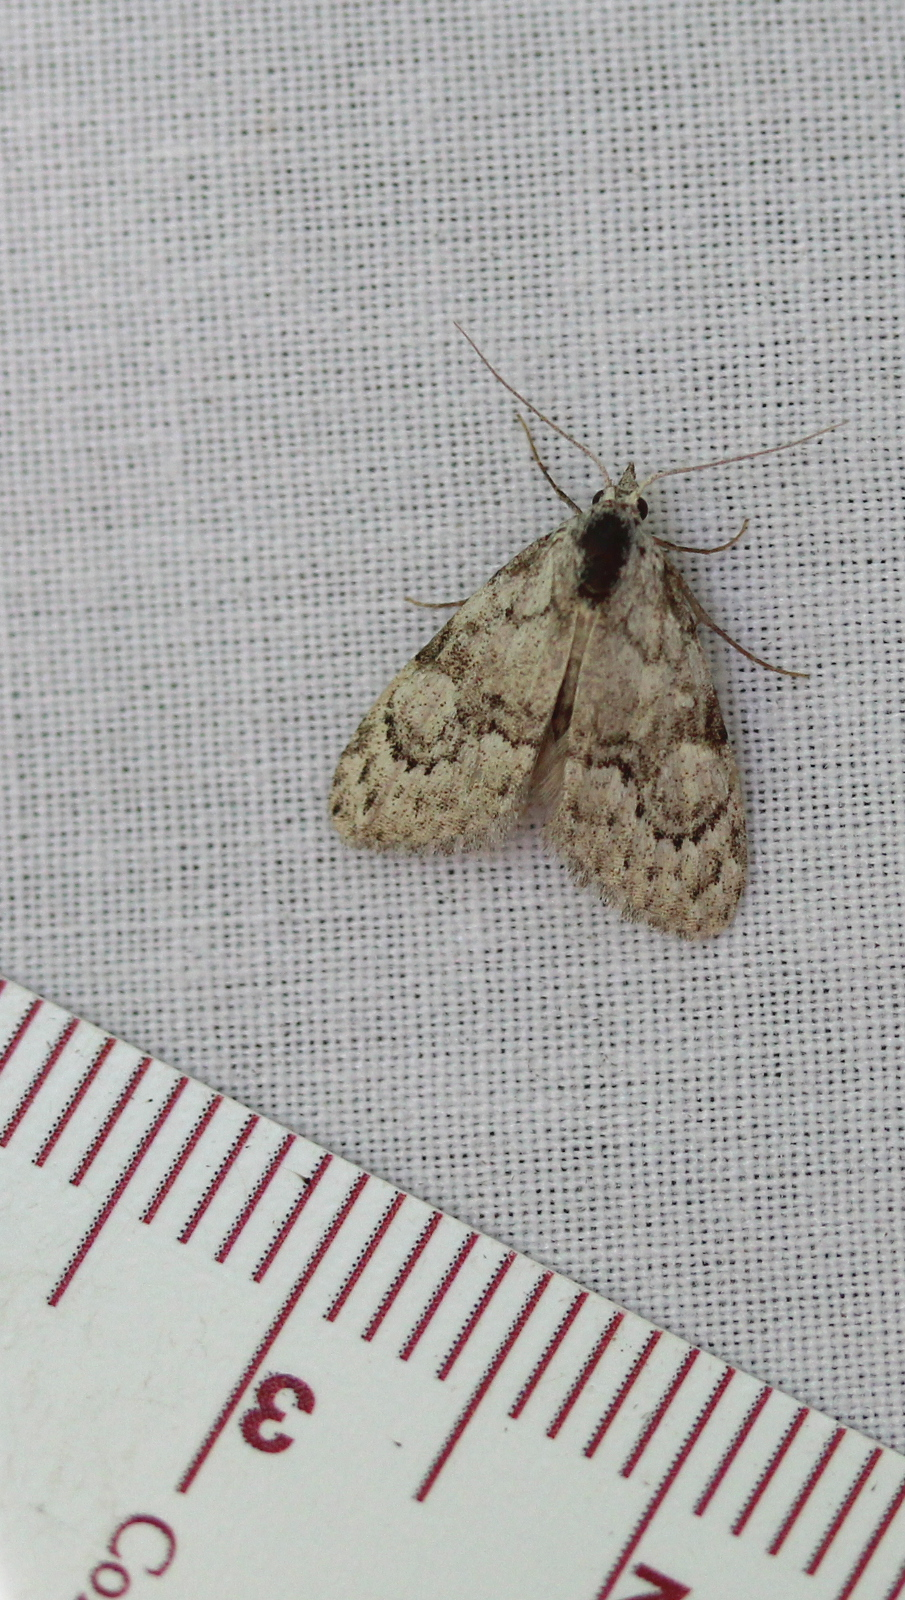 small pale moth on sheet